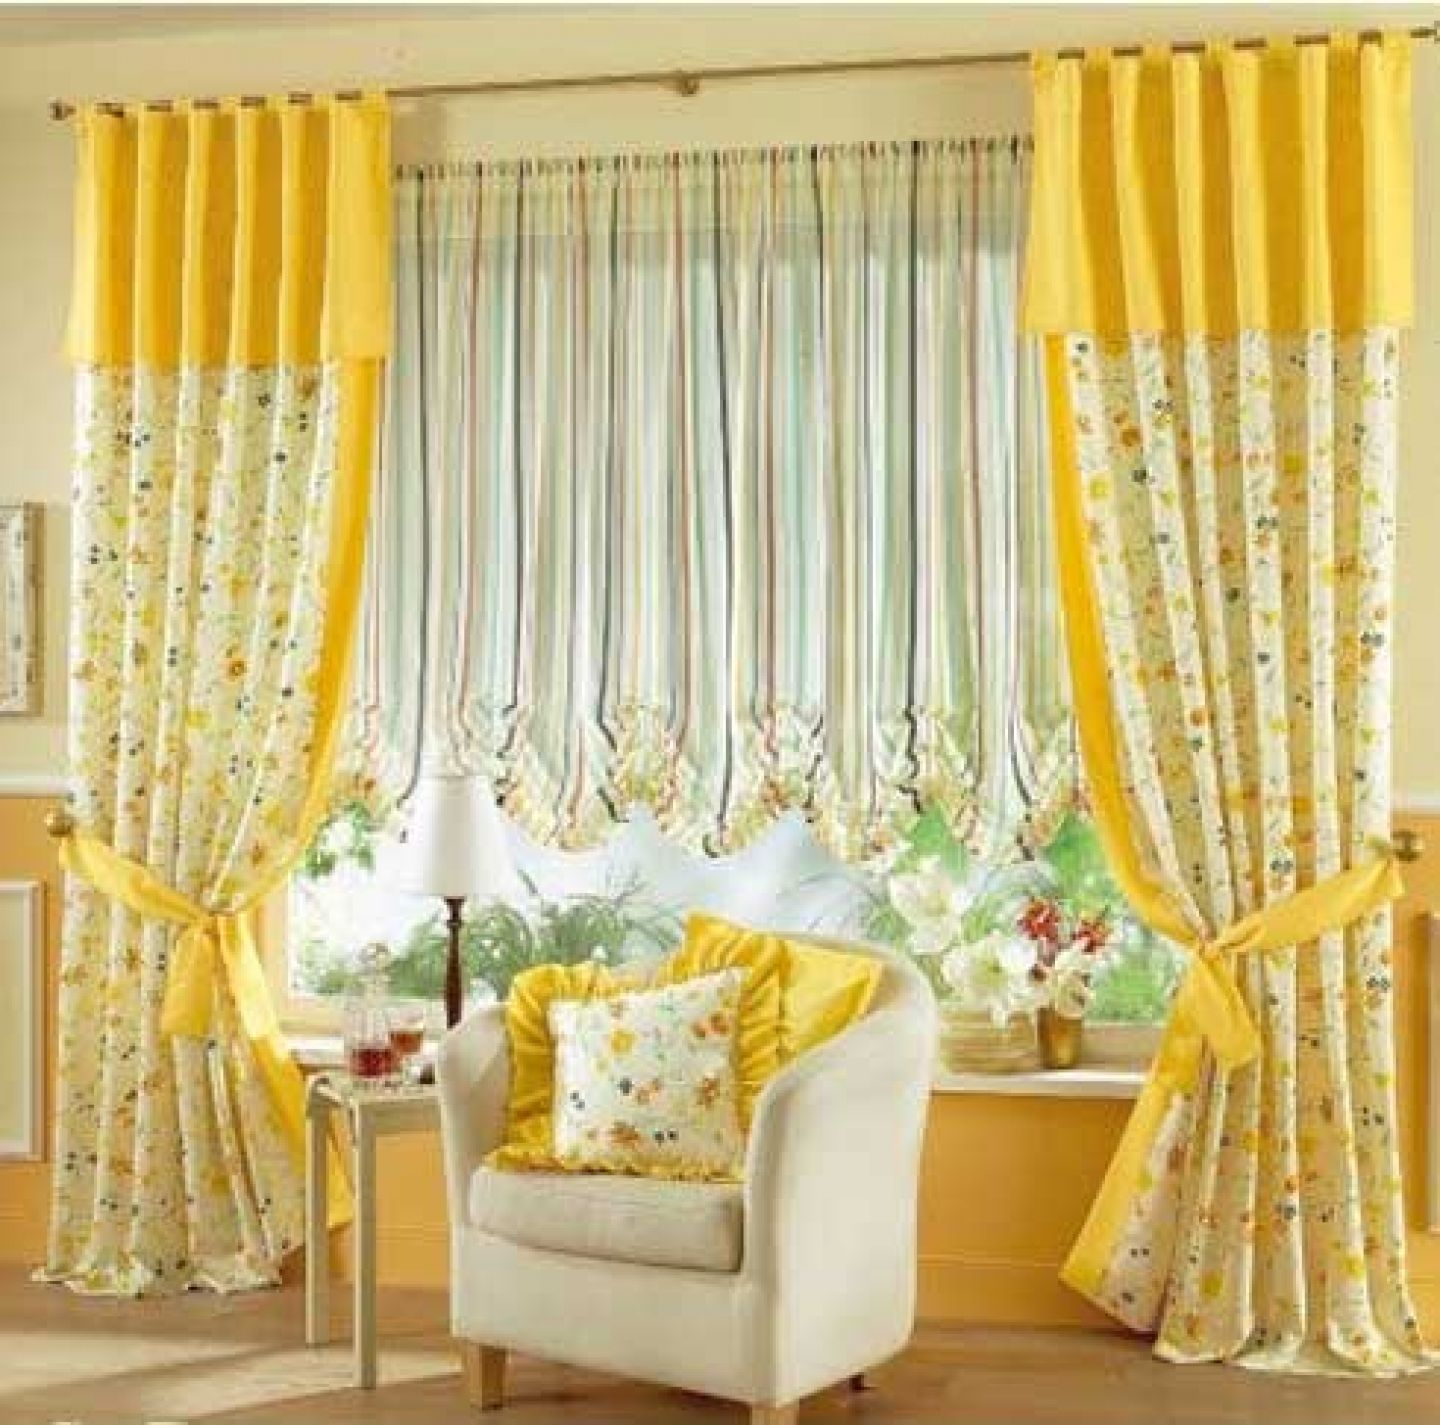 Incroyable New Home Designs Latest Modern Homes Curtains Designs Ideas